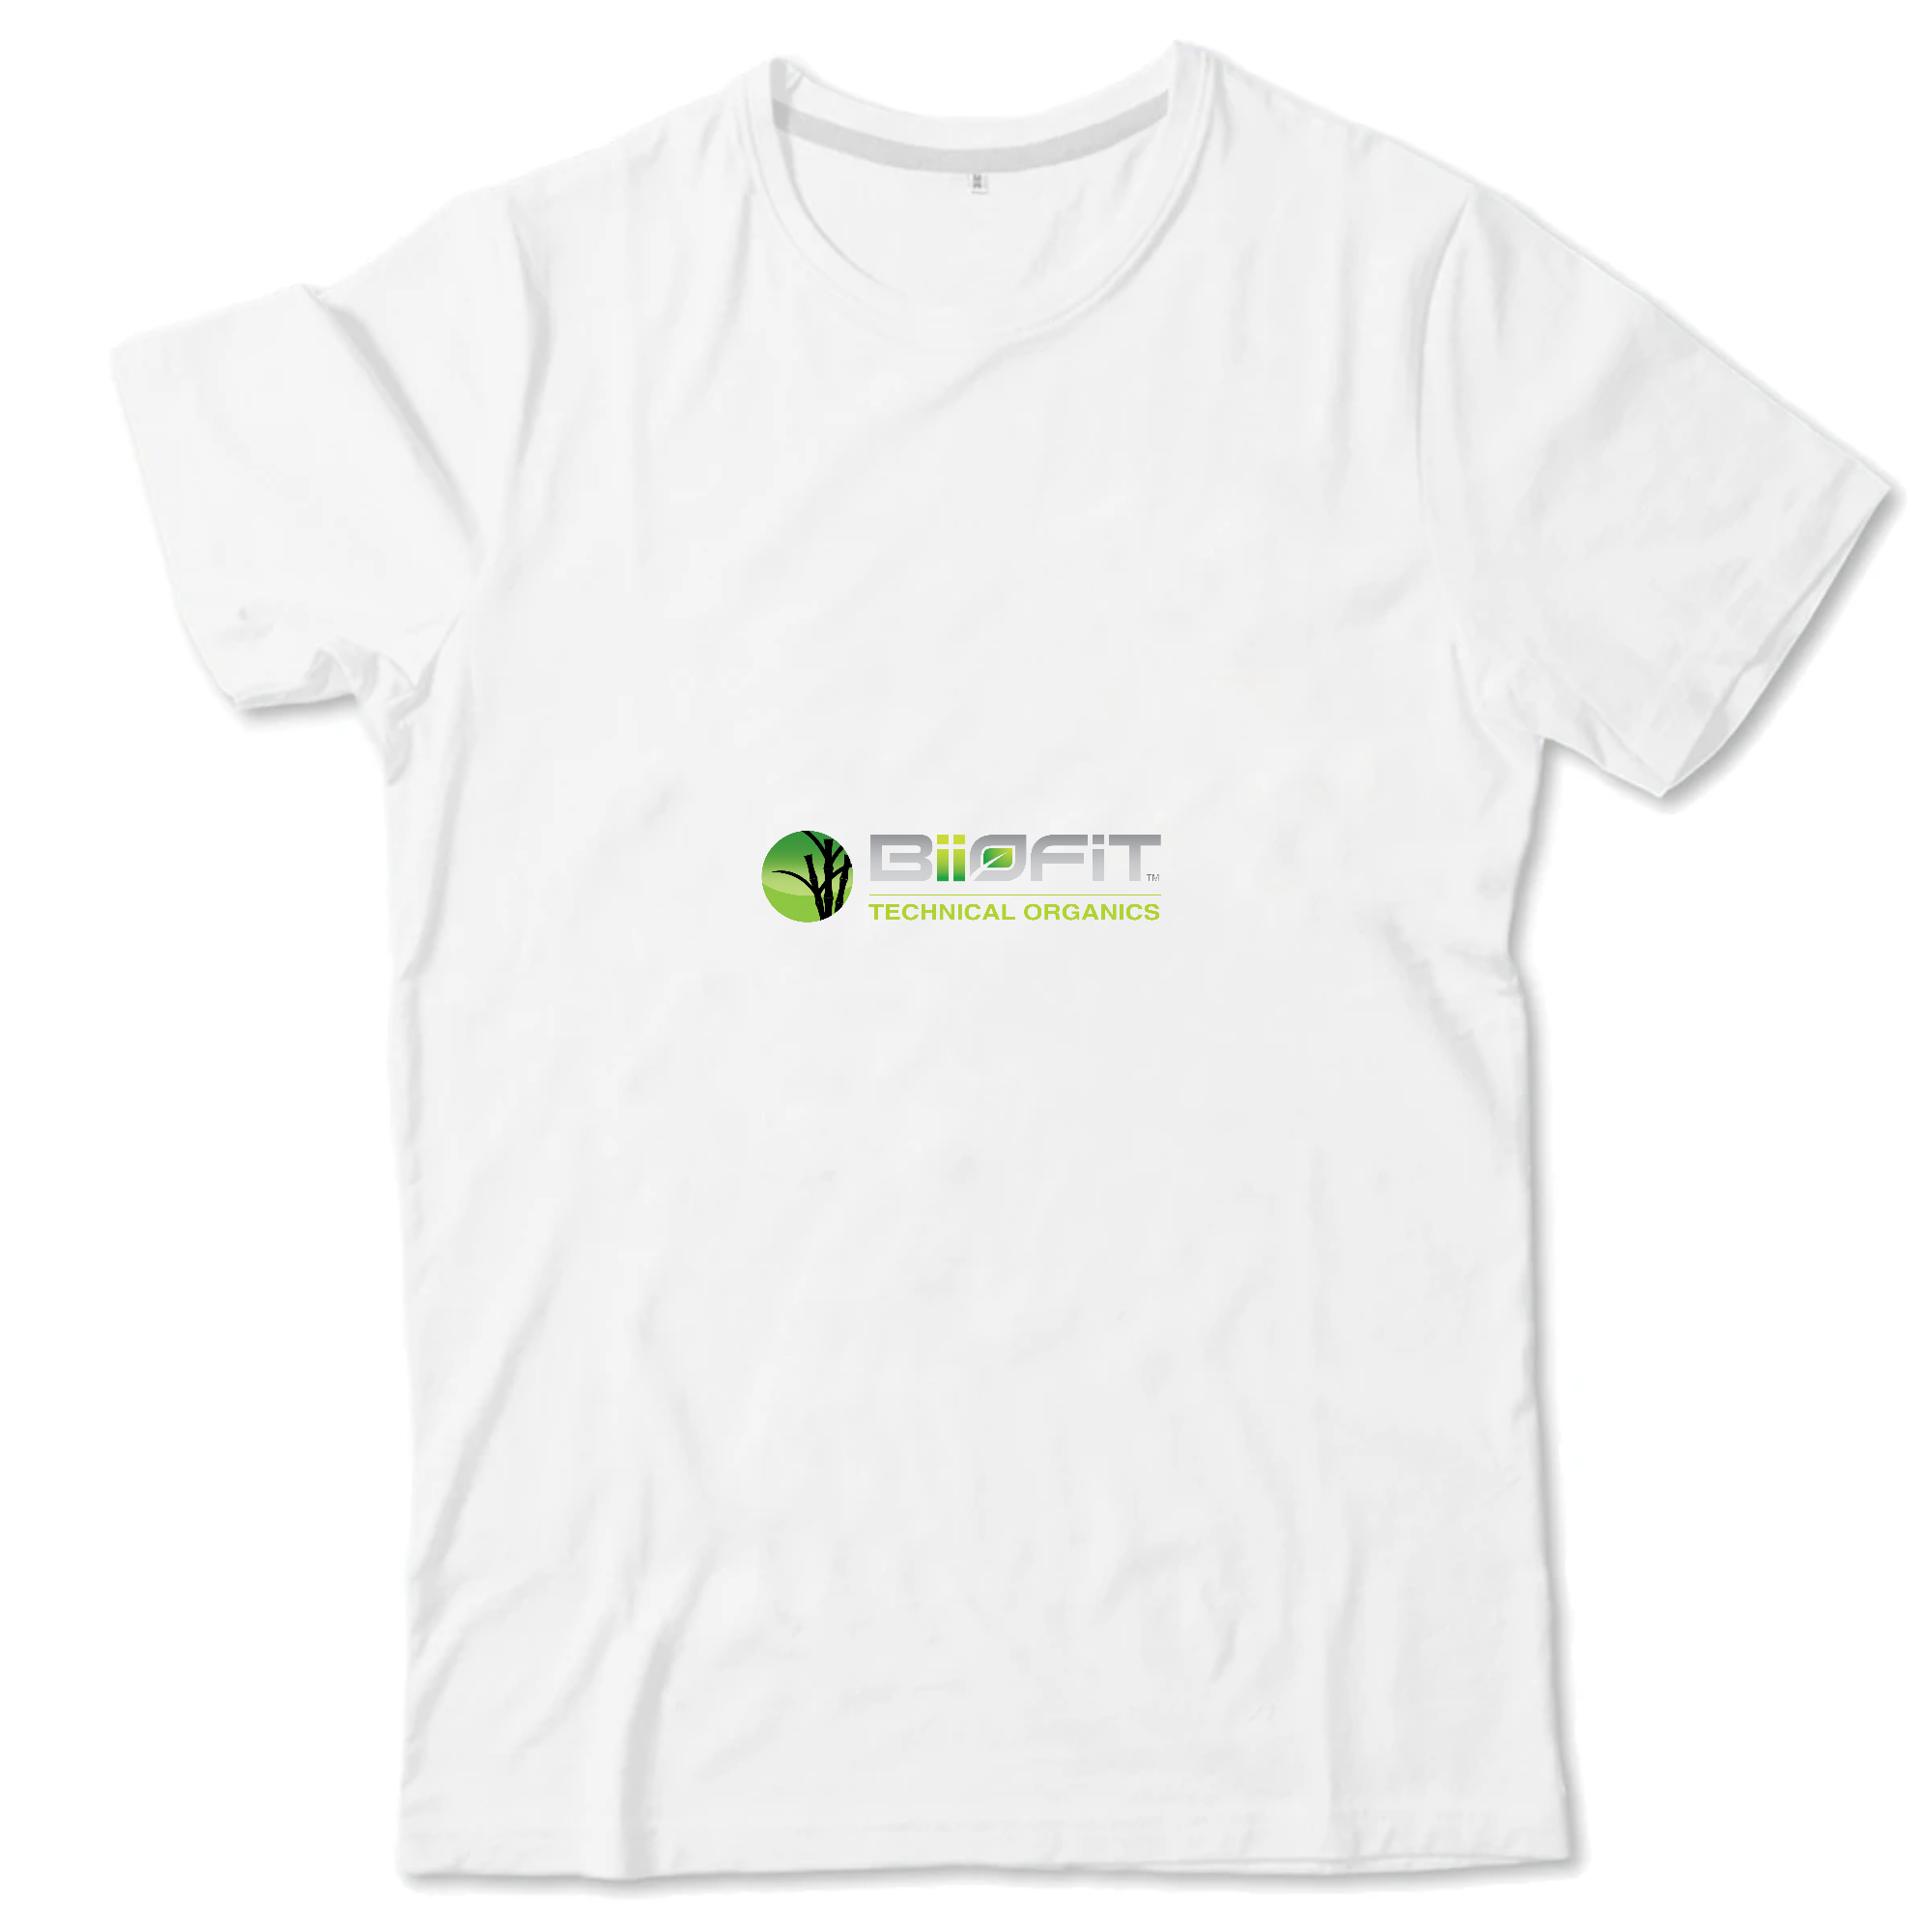 CHILD T-SHIRT - 100 % COTTON